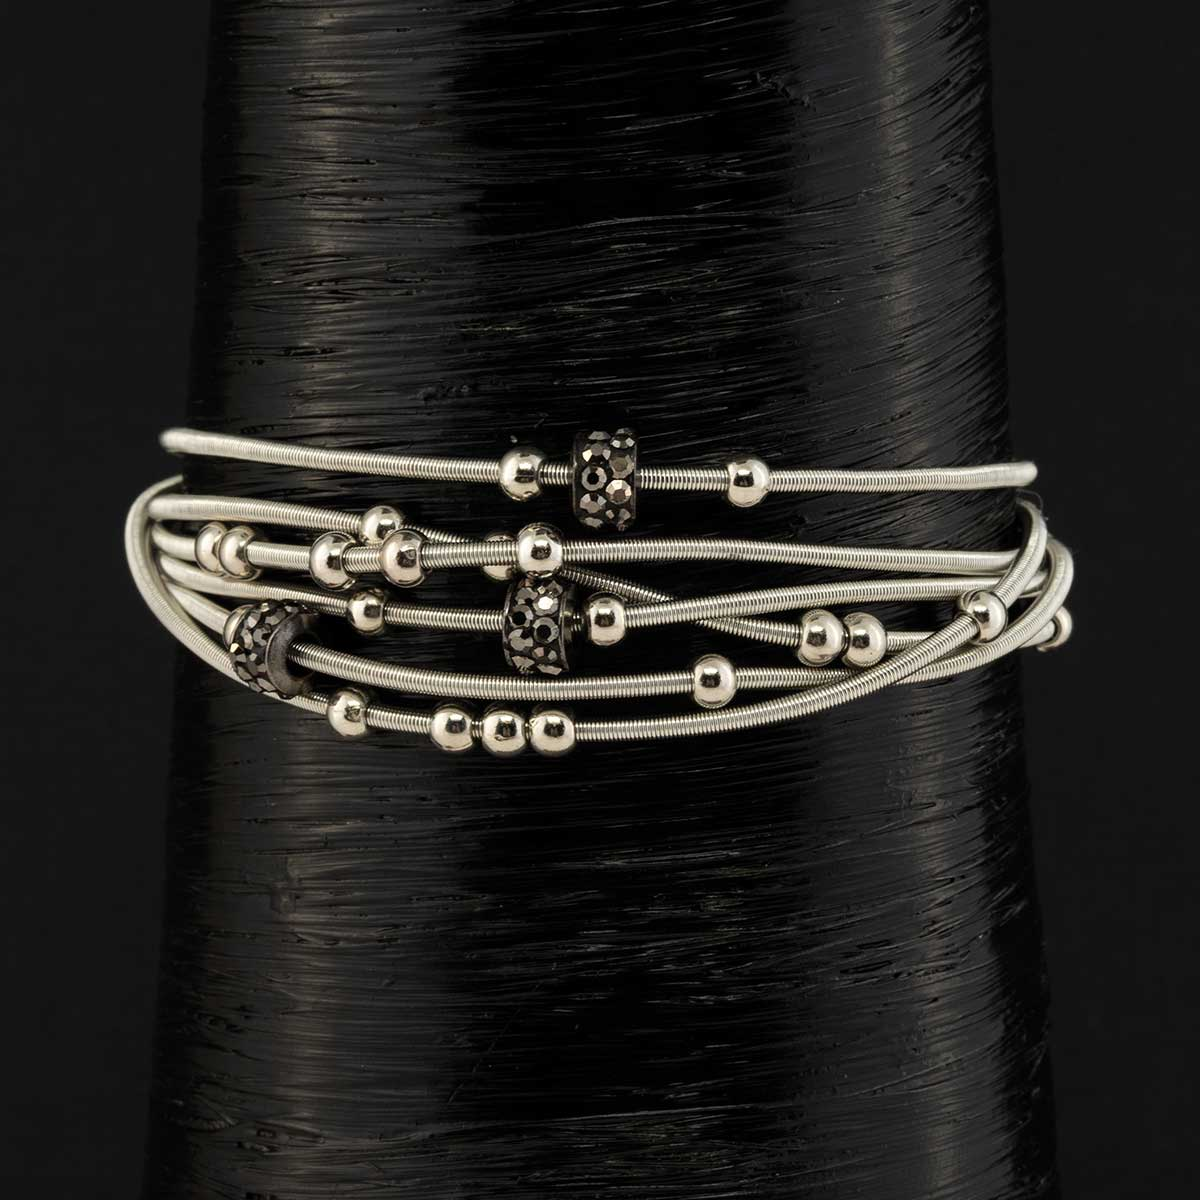 Gunmetal Coil Bracelet with Black Beads and Magnetic Clasp 7.5""